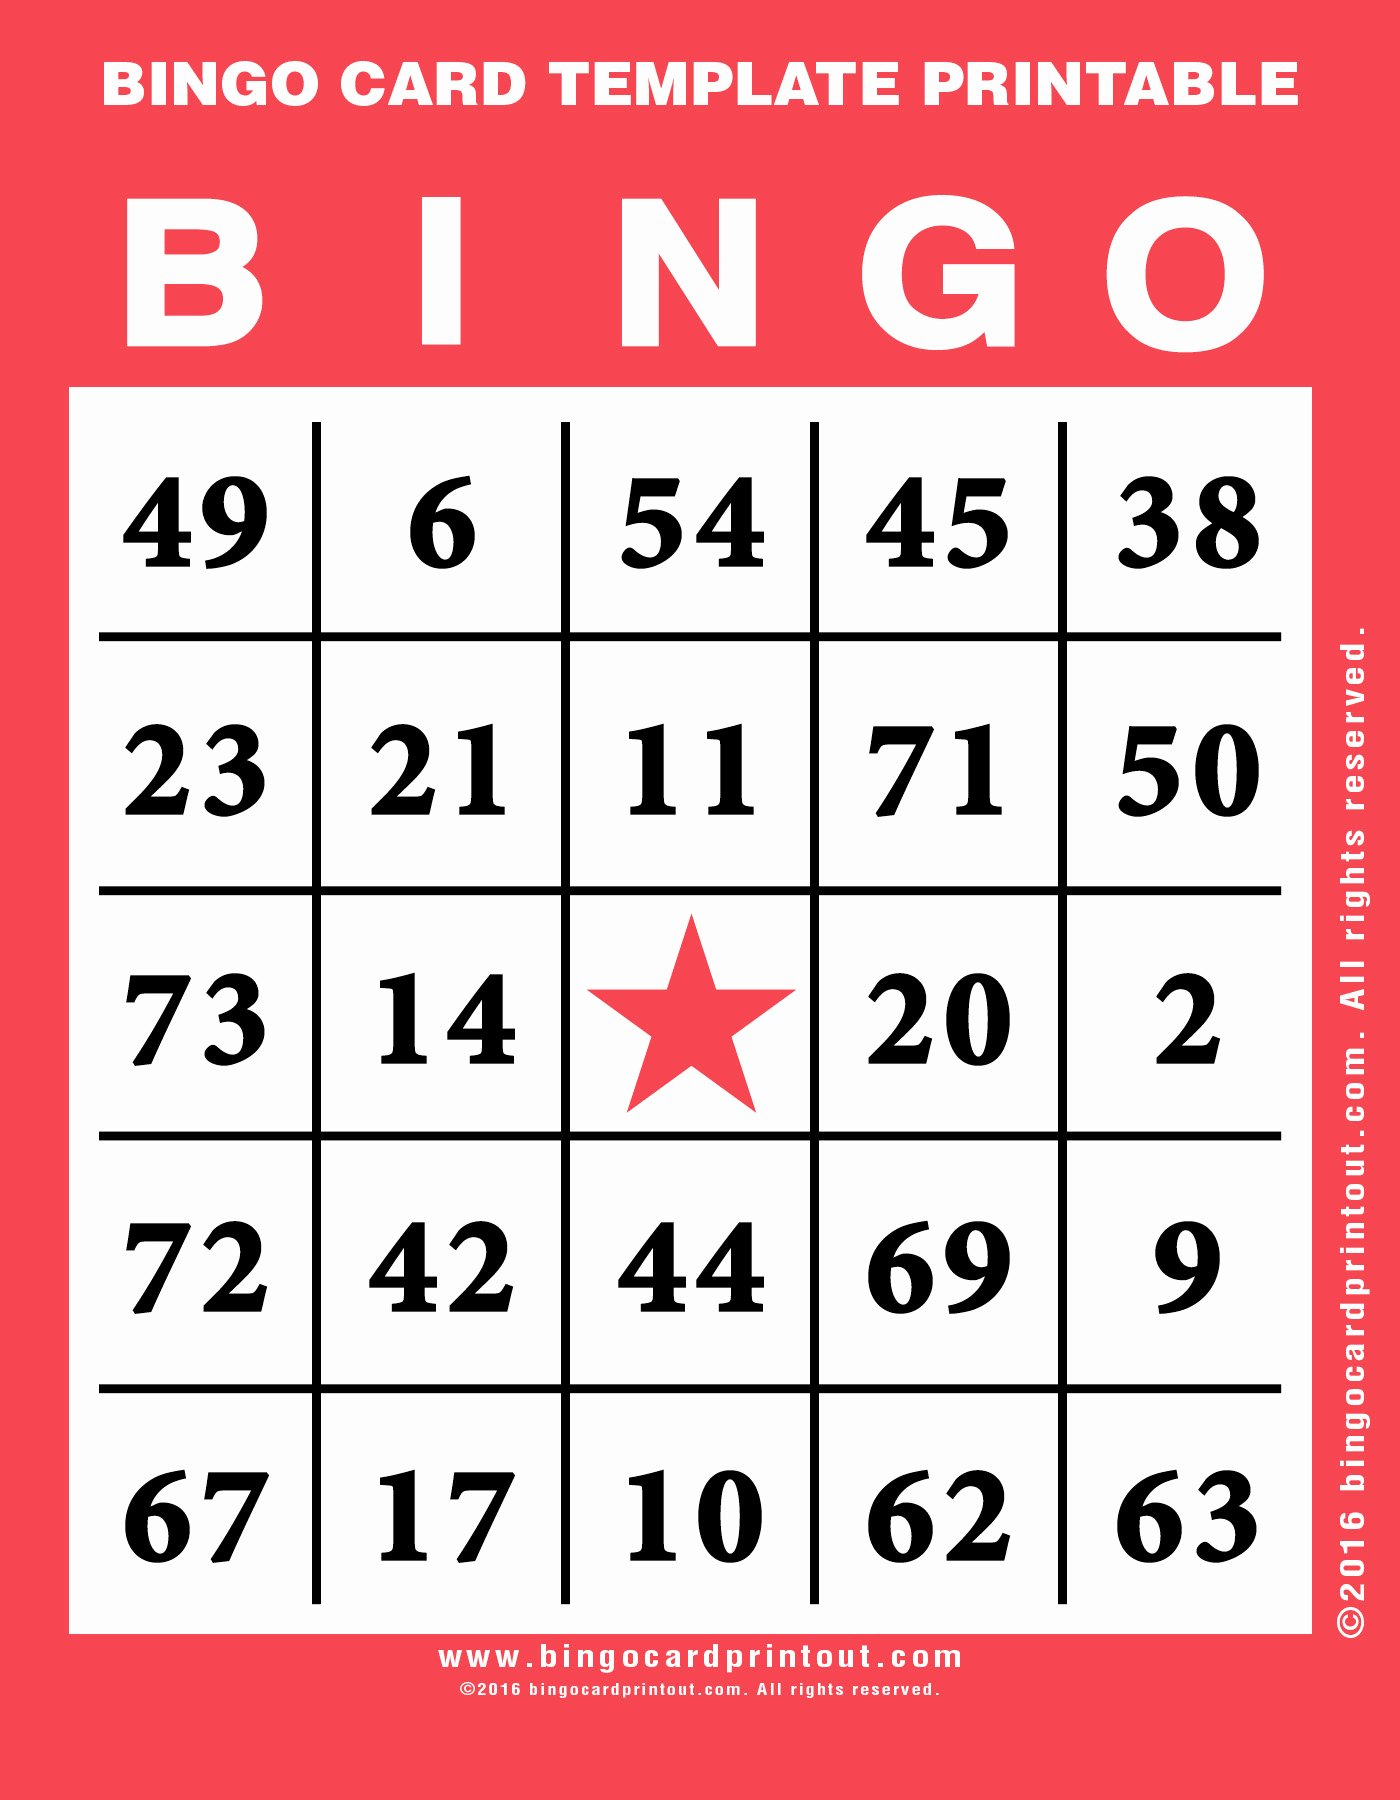 Bingo Card Template Printable Bingocardprintout